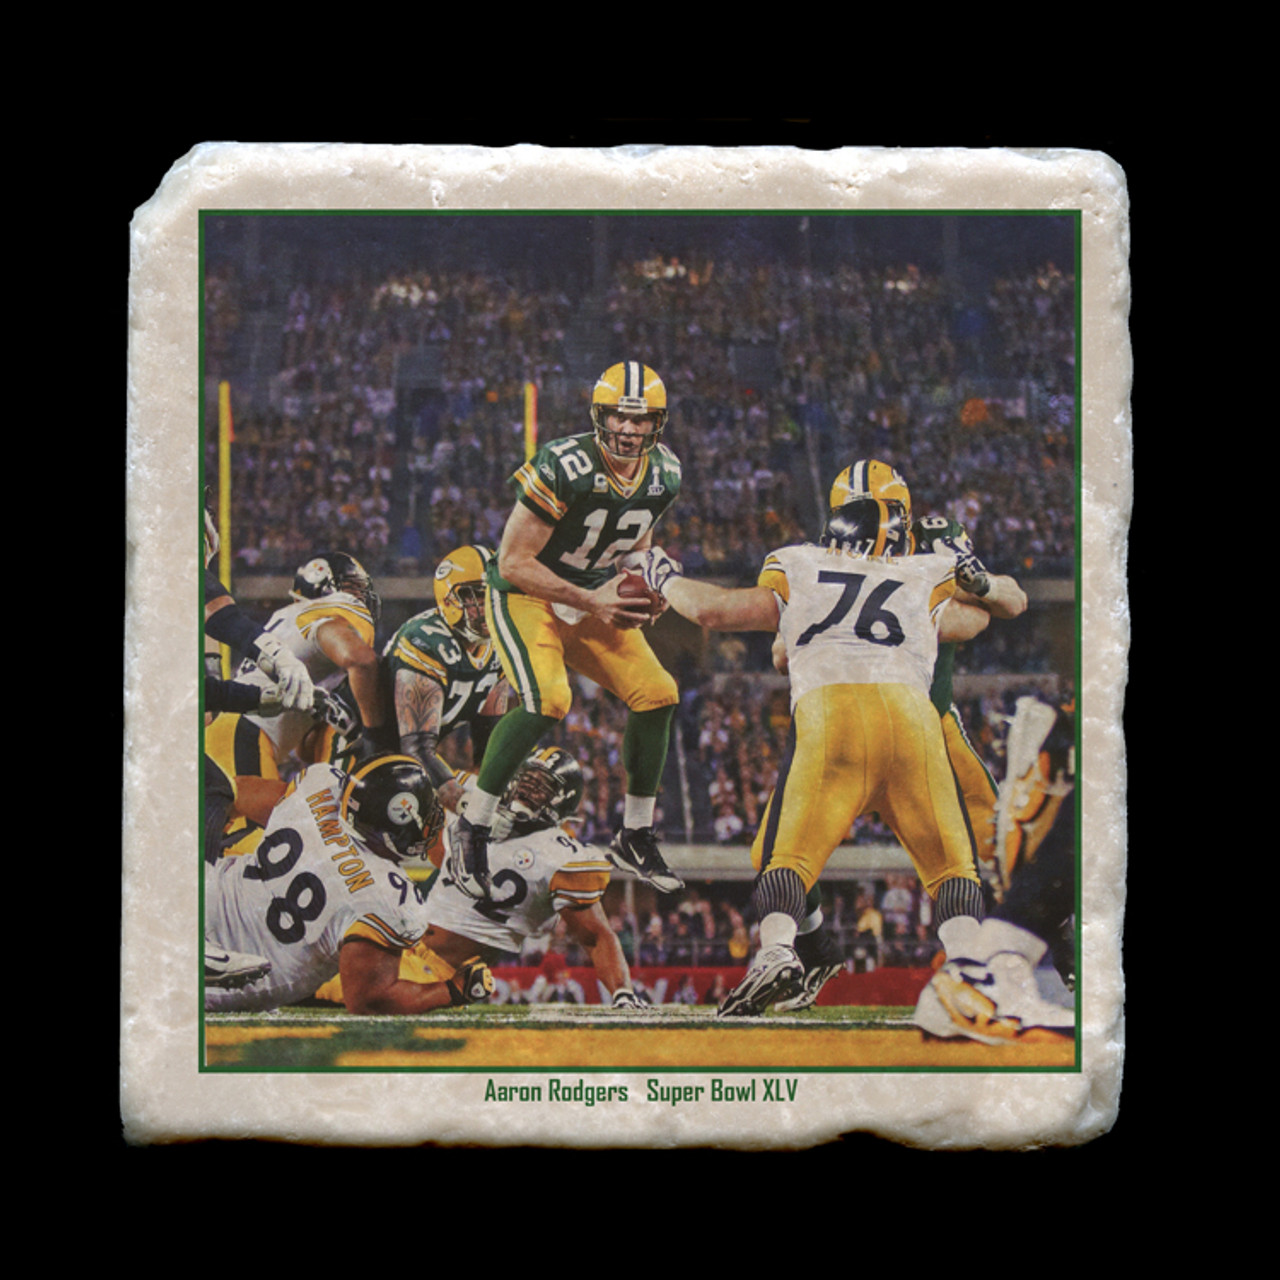 half off a2249 09606 AC09 Packers - Aaron Rodgers Super Bowl XLV - 4x4